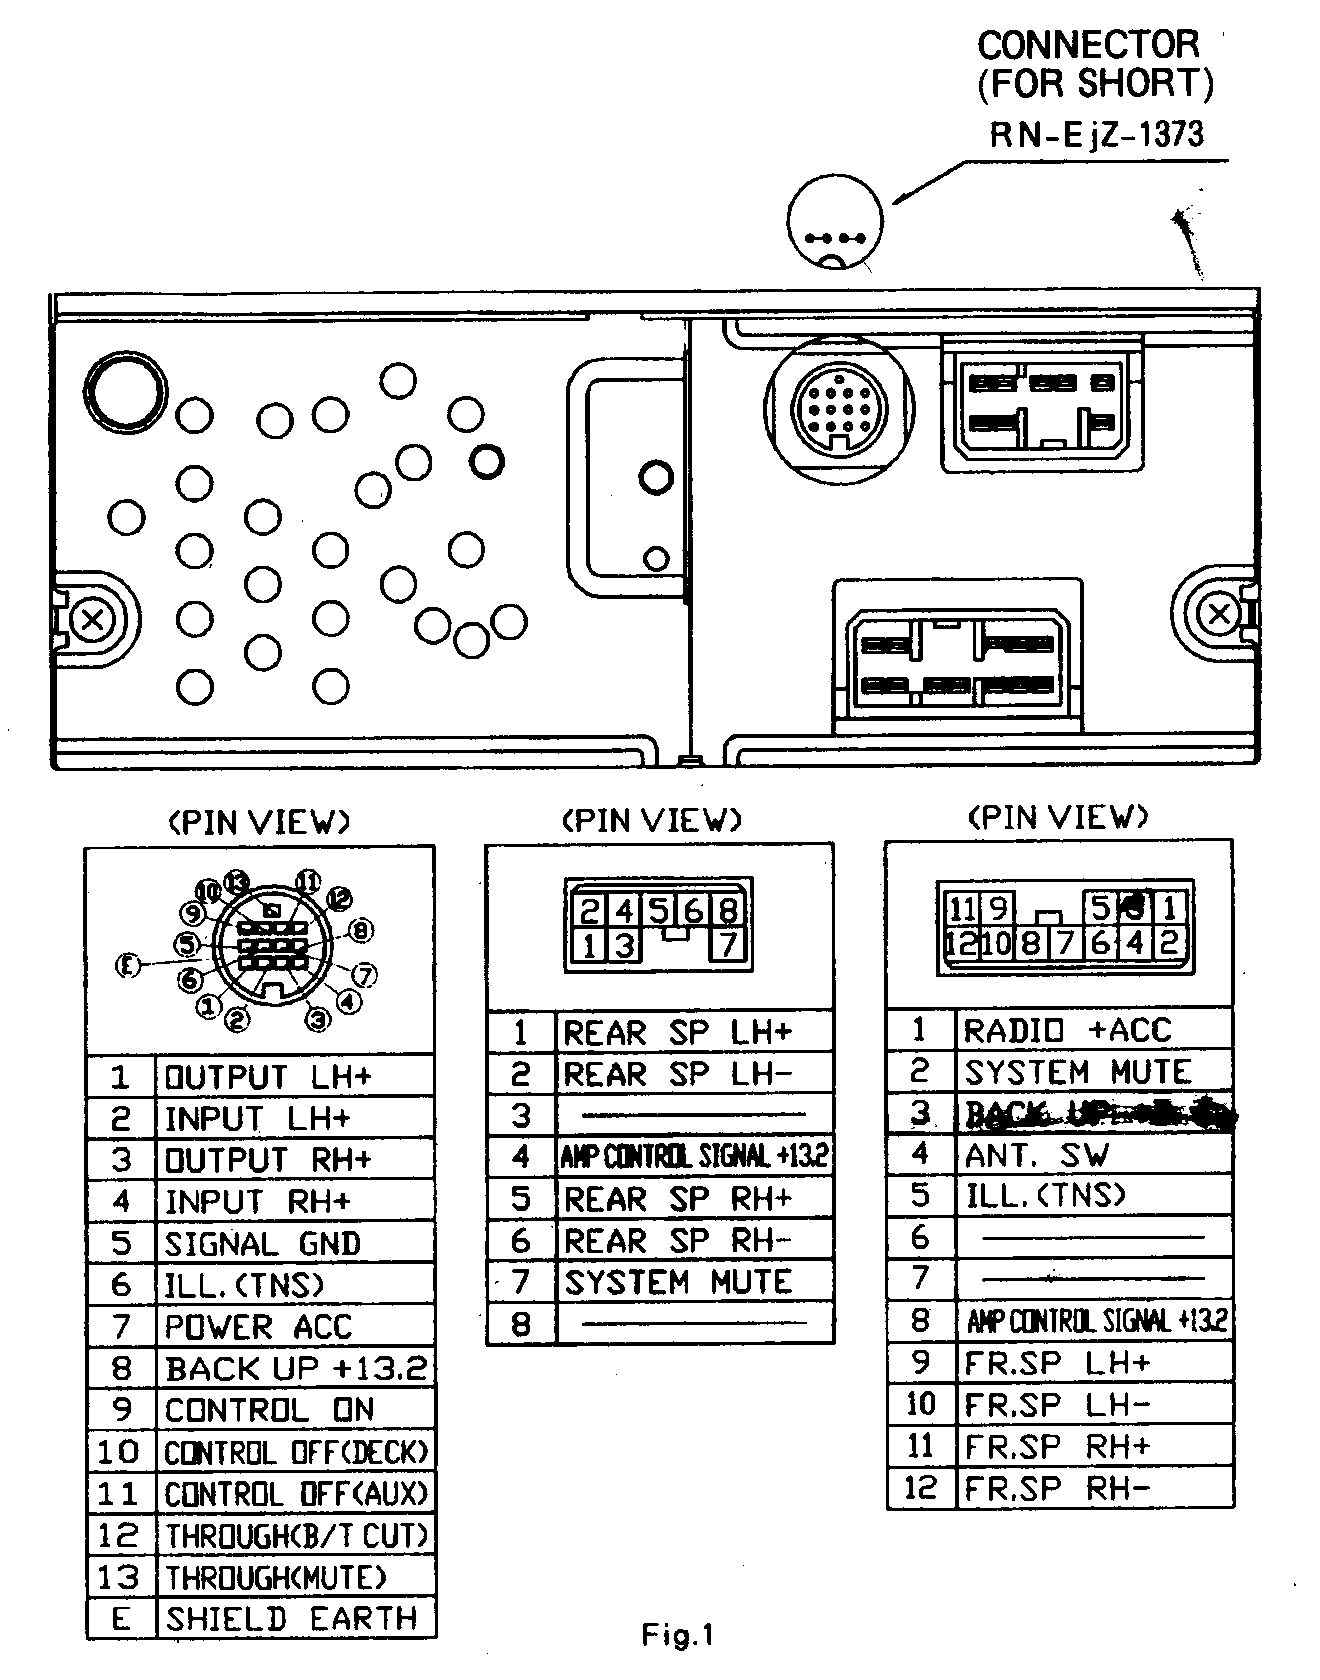 Mazda car stereo wiring diagram harness pinout connector 1991 mazda 626 wiring diagram,wiring wiring diagram images database,1996 Mazda Millenia Wiring Diagrams